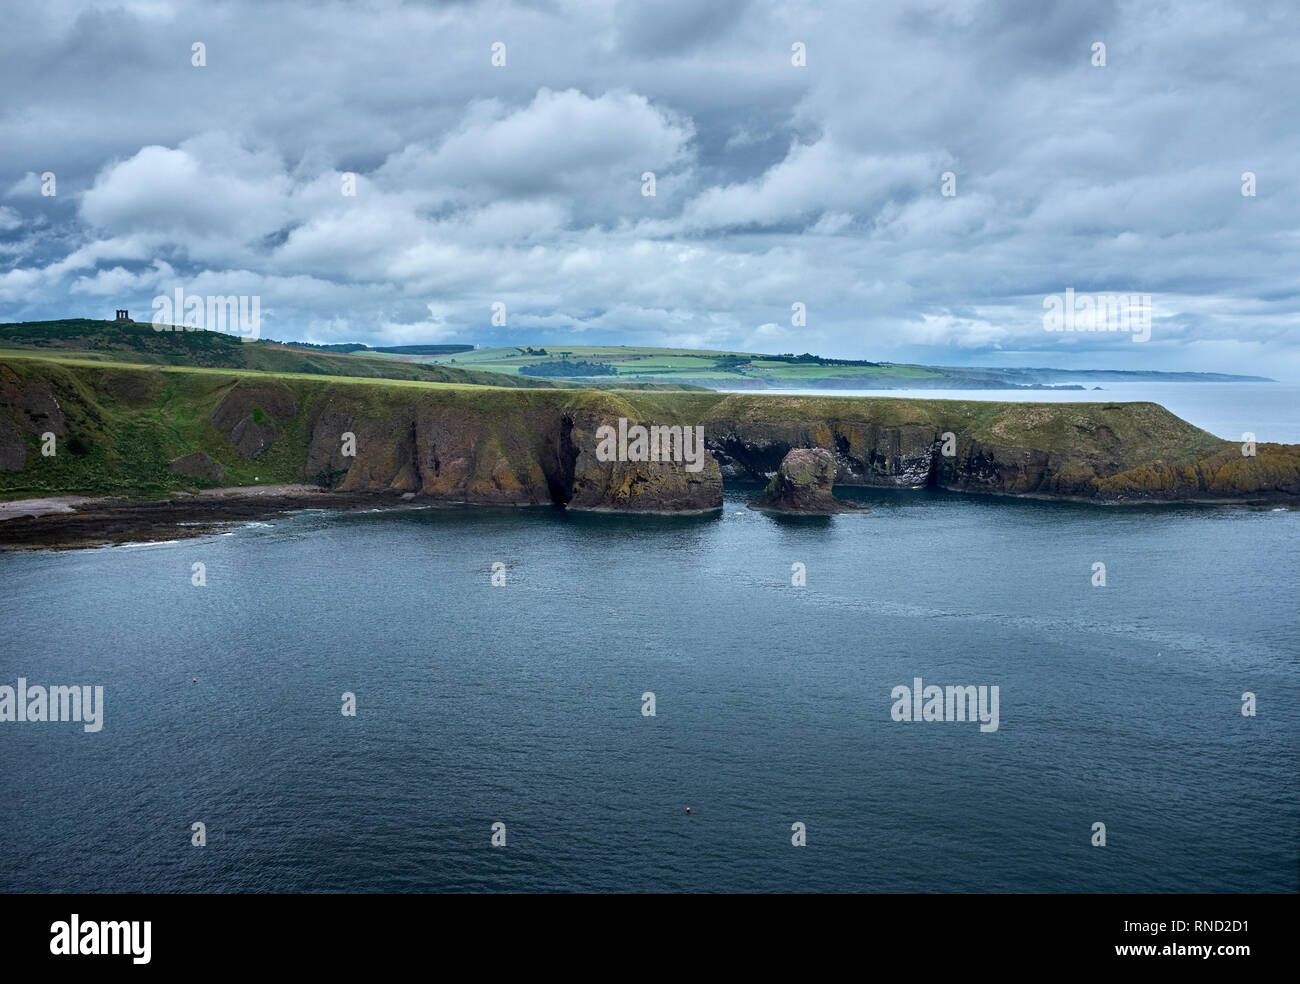 DUNNOTAR CASTLE, ABERDEEN, ANGUS, SCOTLAND. 07 July 2017. Looking north along the coast from Dunnotar Castle. Angus, Scotland - Stock Image